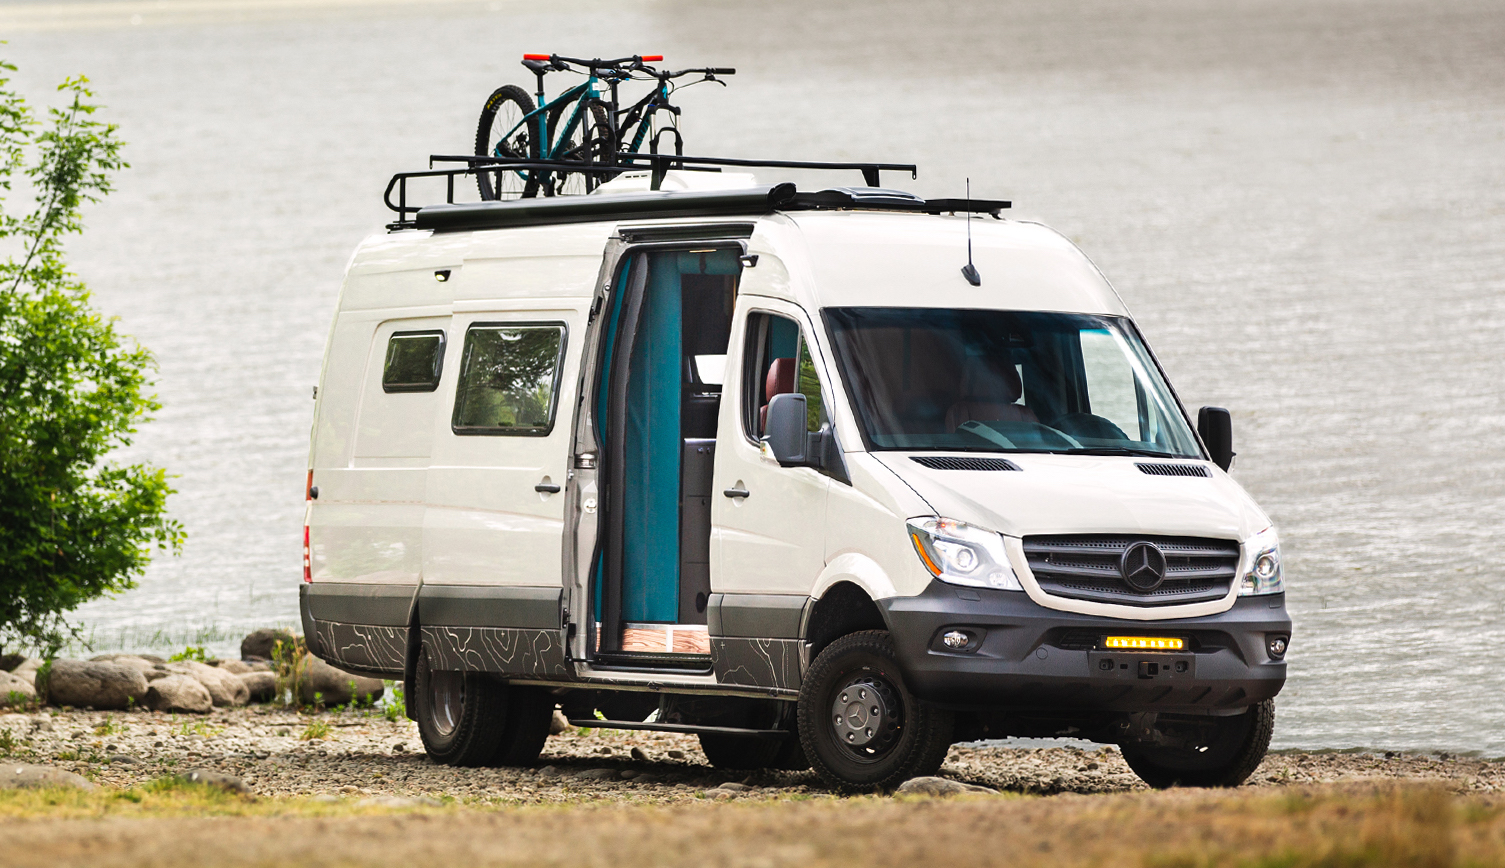 A white camper van sits on the banks of a lake. The camper van's side door is open and there is a roof rack with two bikes on top.